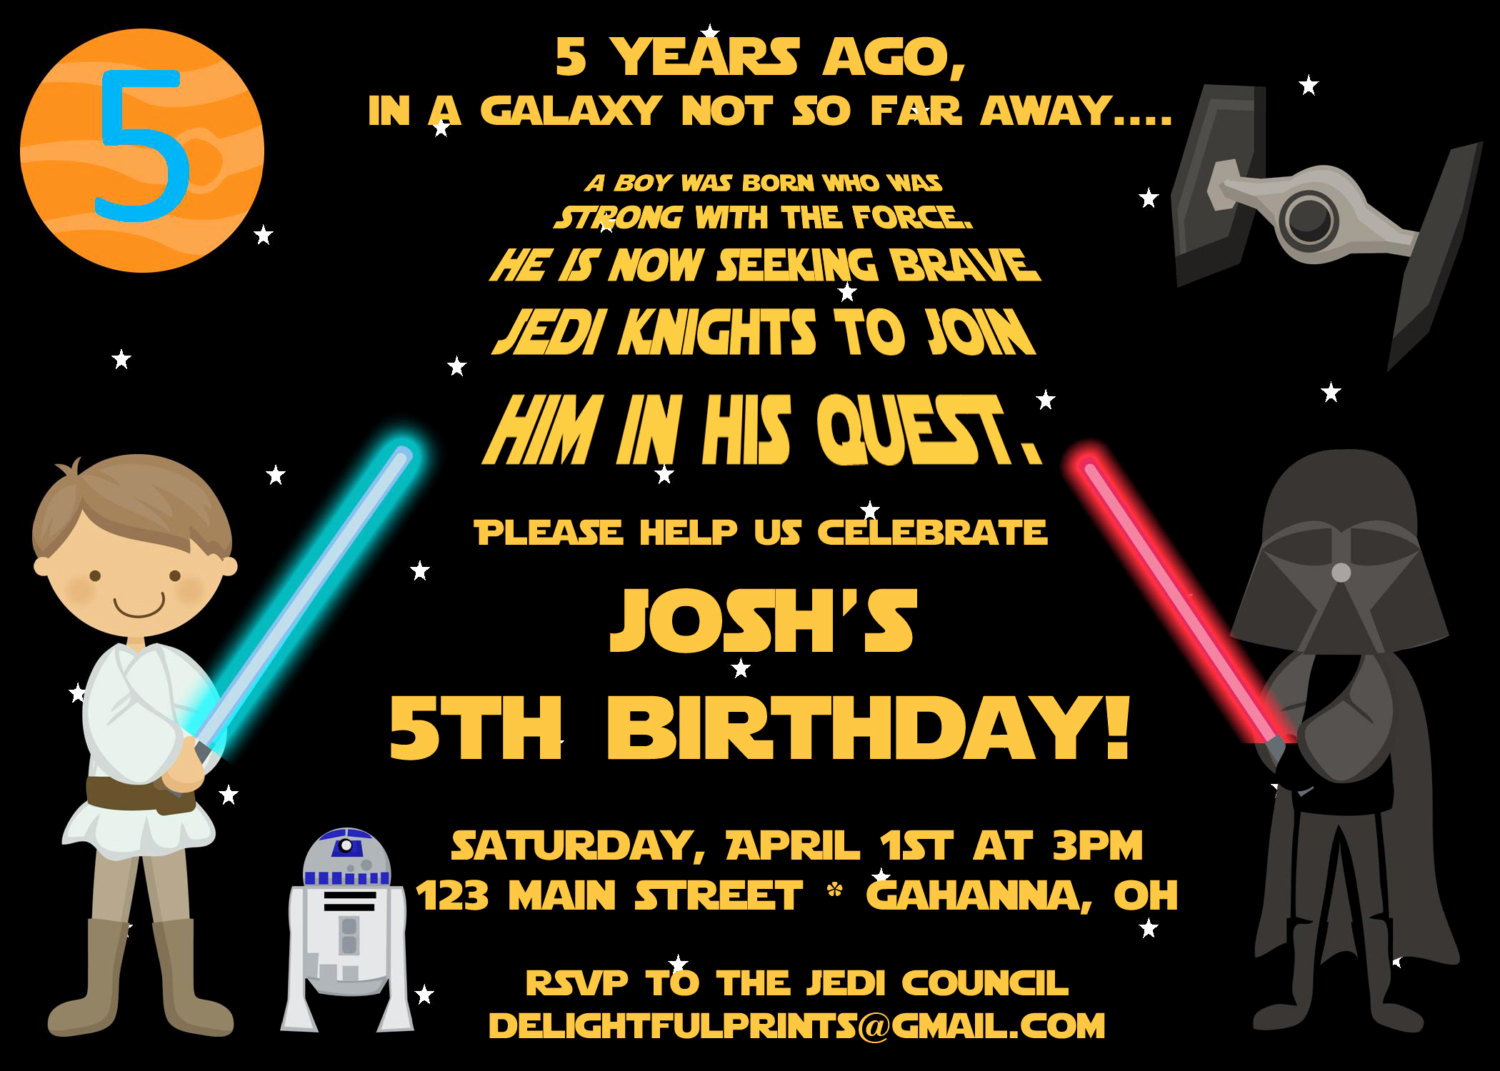 Star Wars Party Invitation Templates Elegant Free Printable Star Wars Birthday Party Invitations